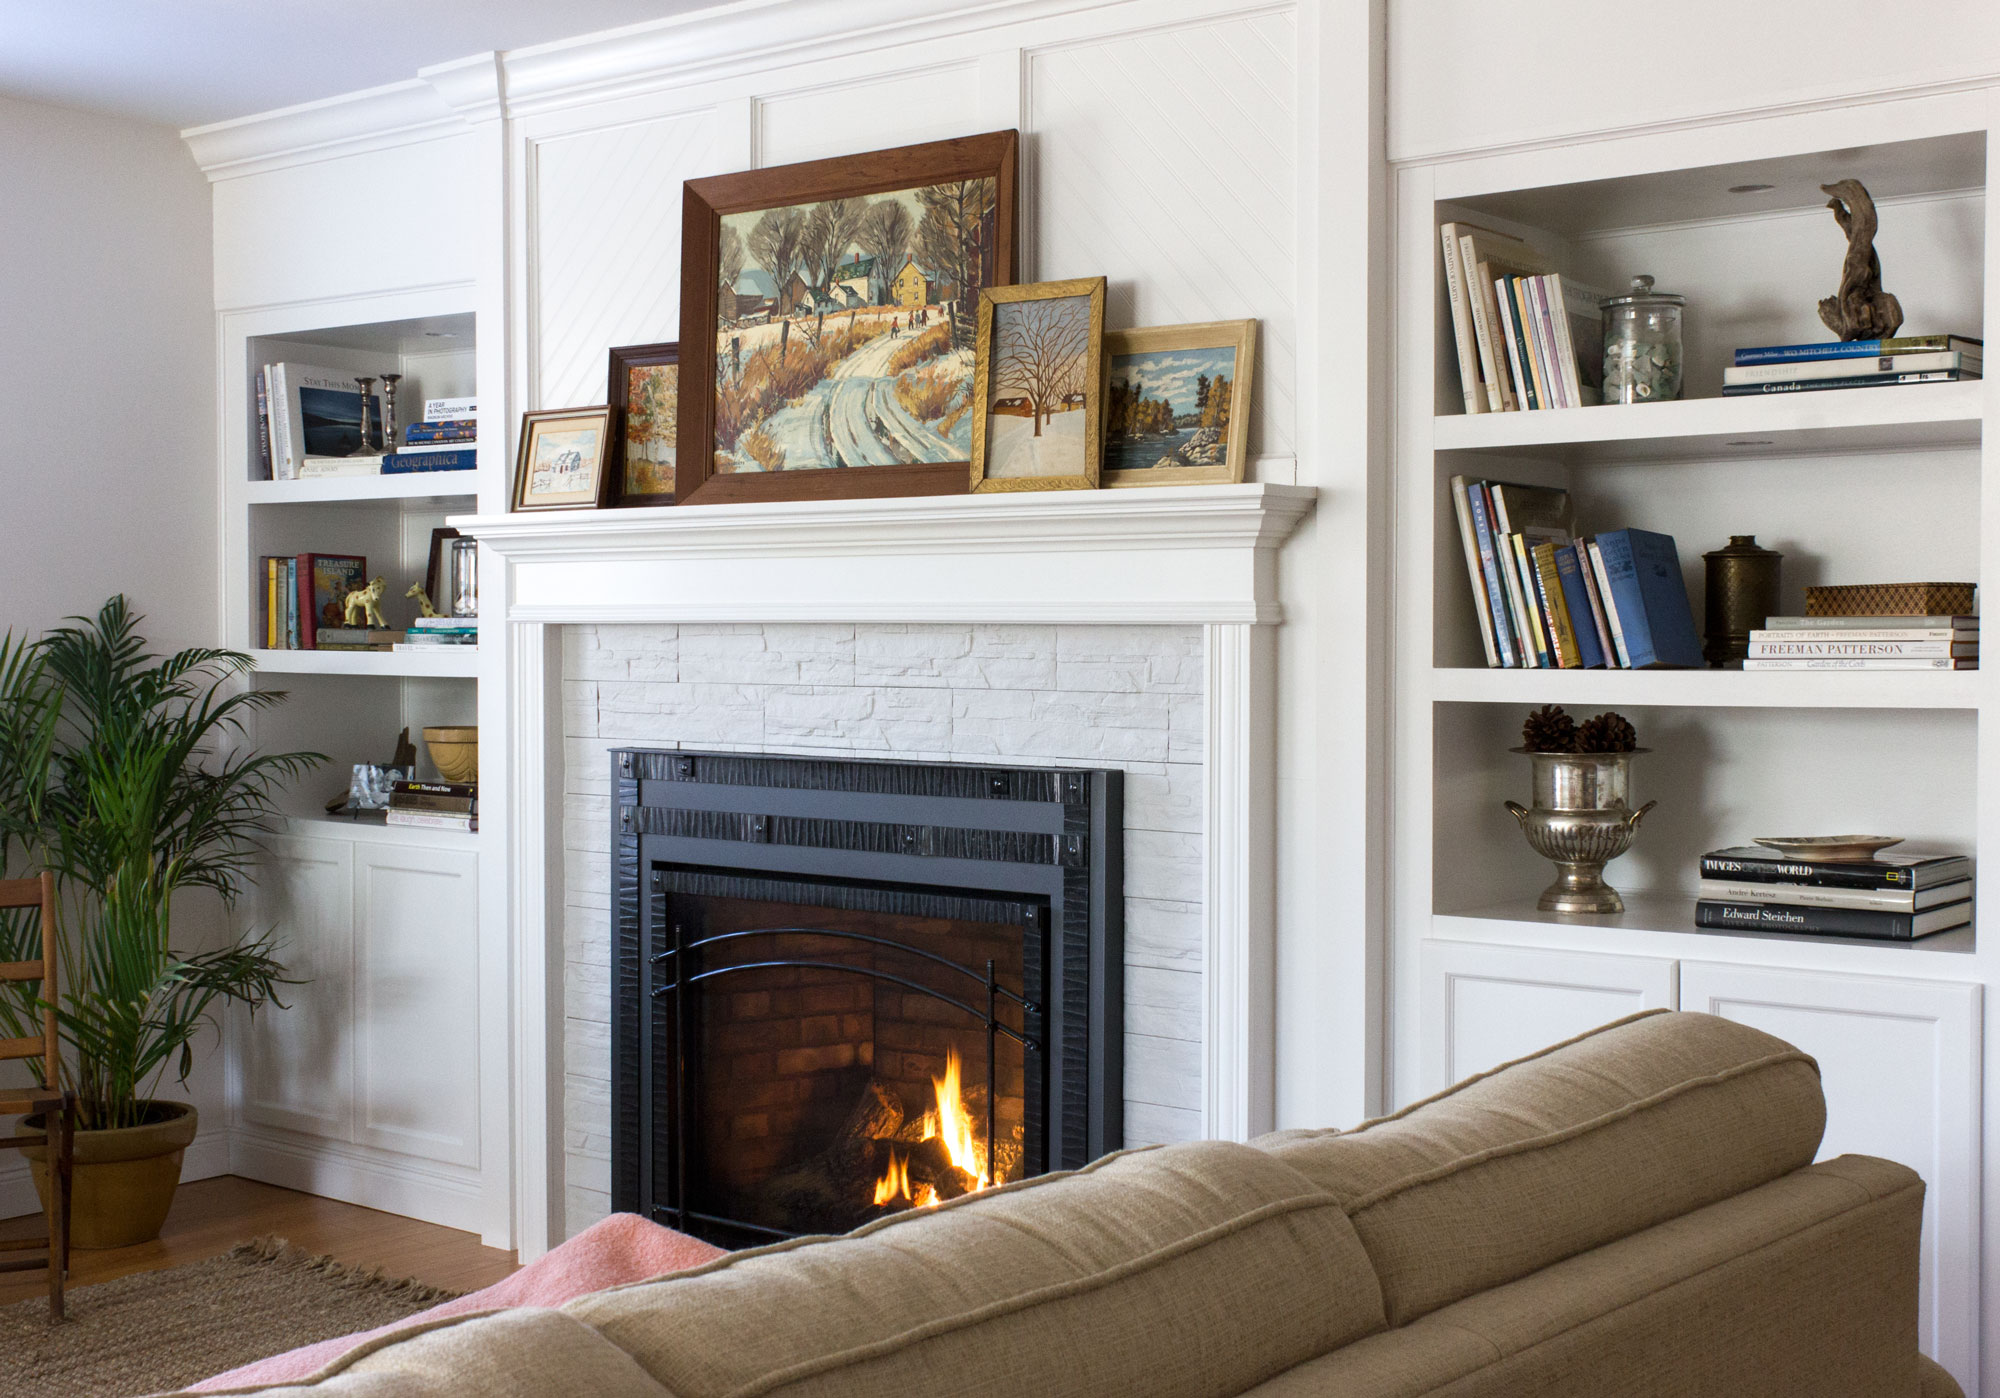 built-in bookshelves and mantle around fireplace